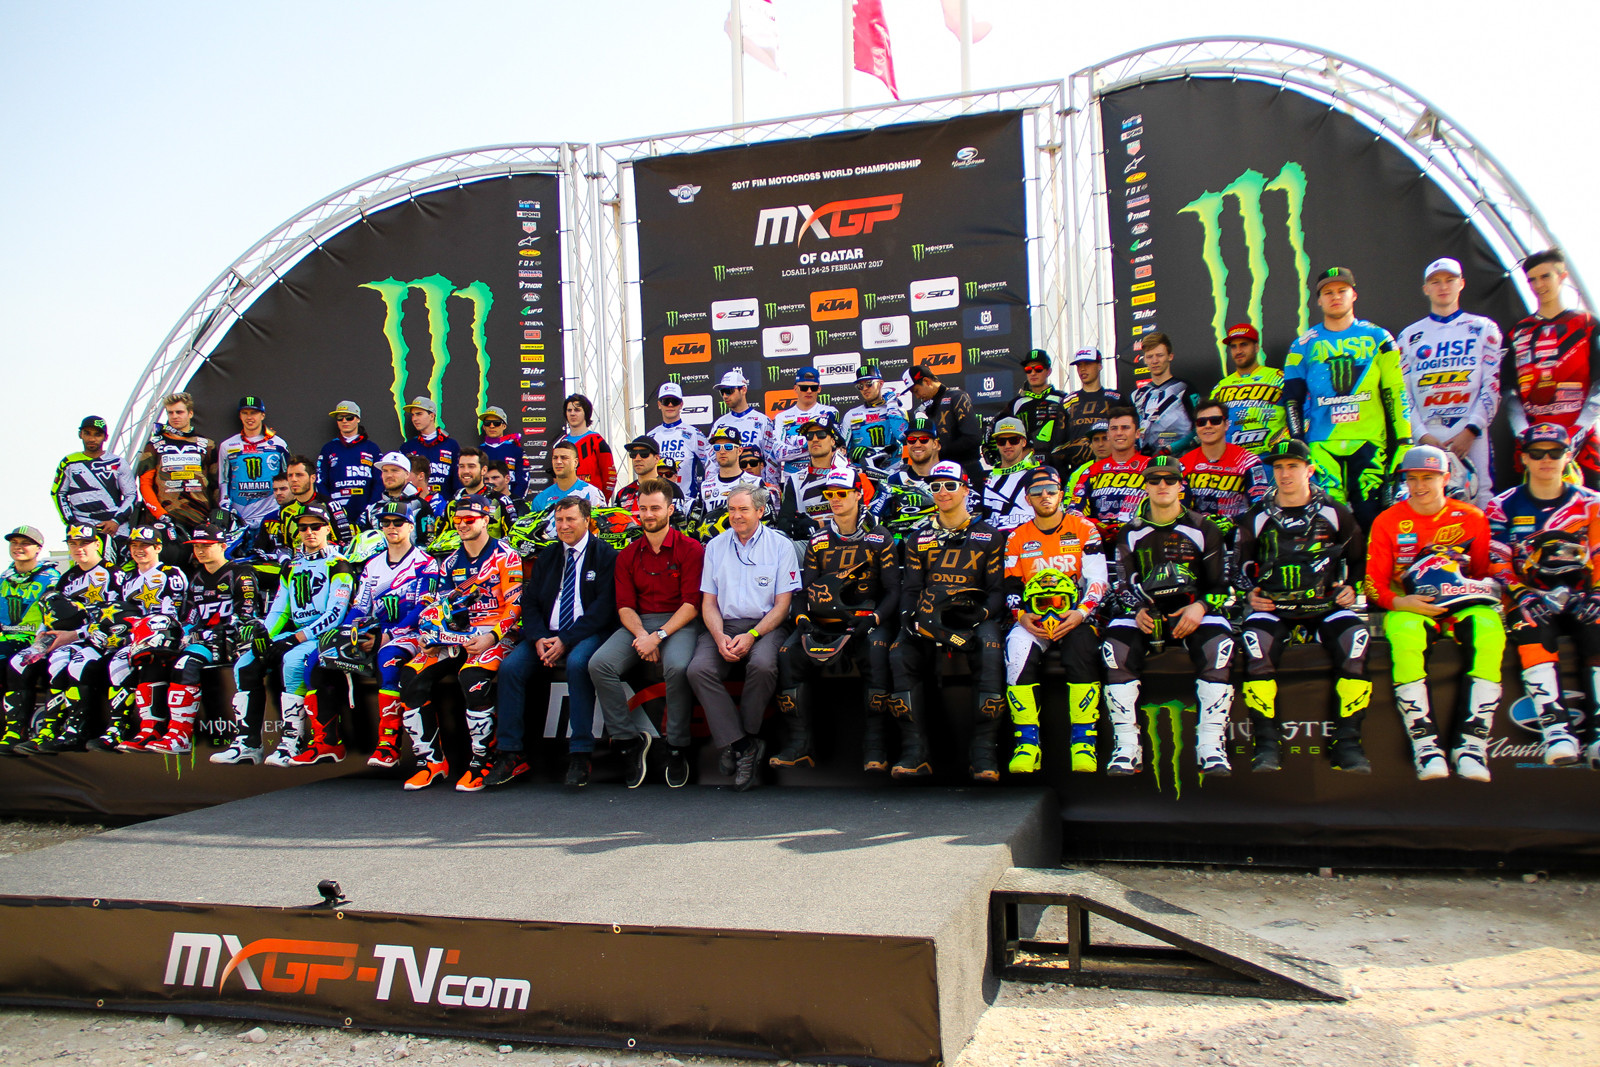 Riders of MXGP and MX2 - Photo Blast: 2017 MXGP of Qatar - Motocross Pictures - Vital MX